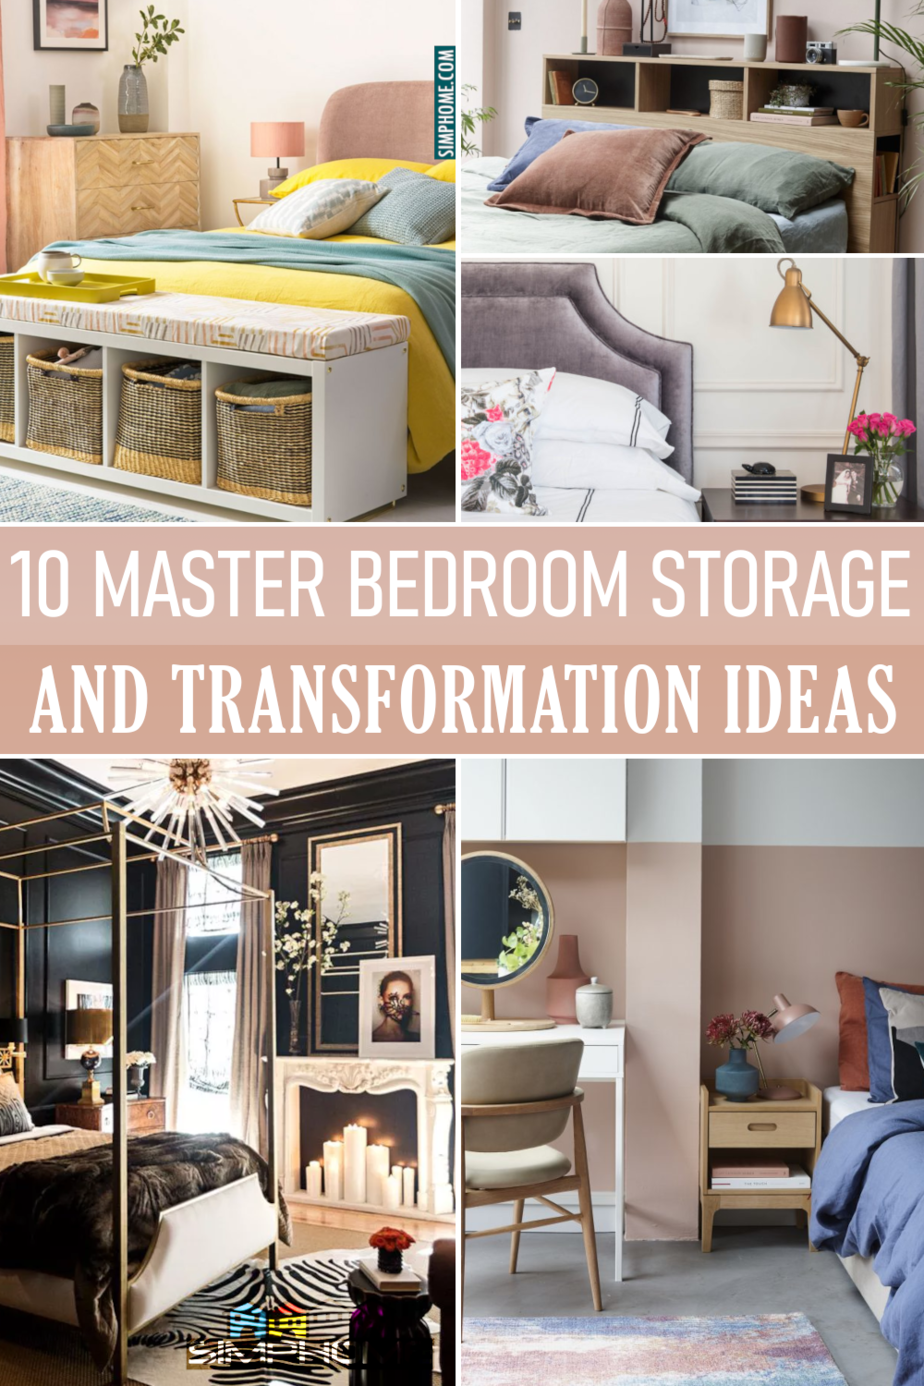 10 Master Bedroom Storage and Transformation Ideas via Simphome.comFeatured image